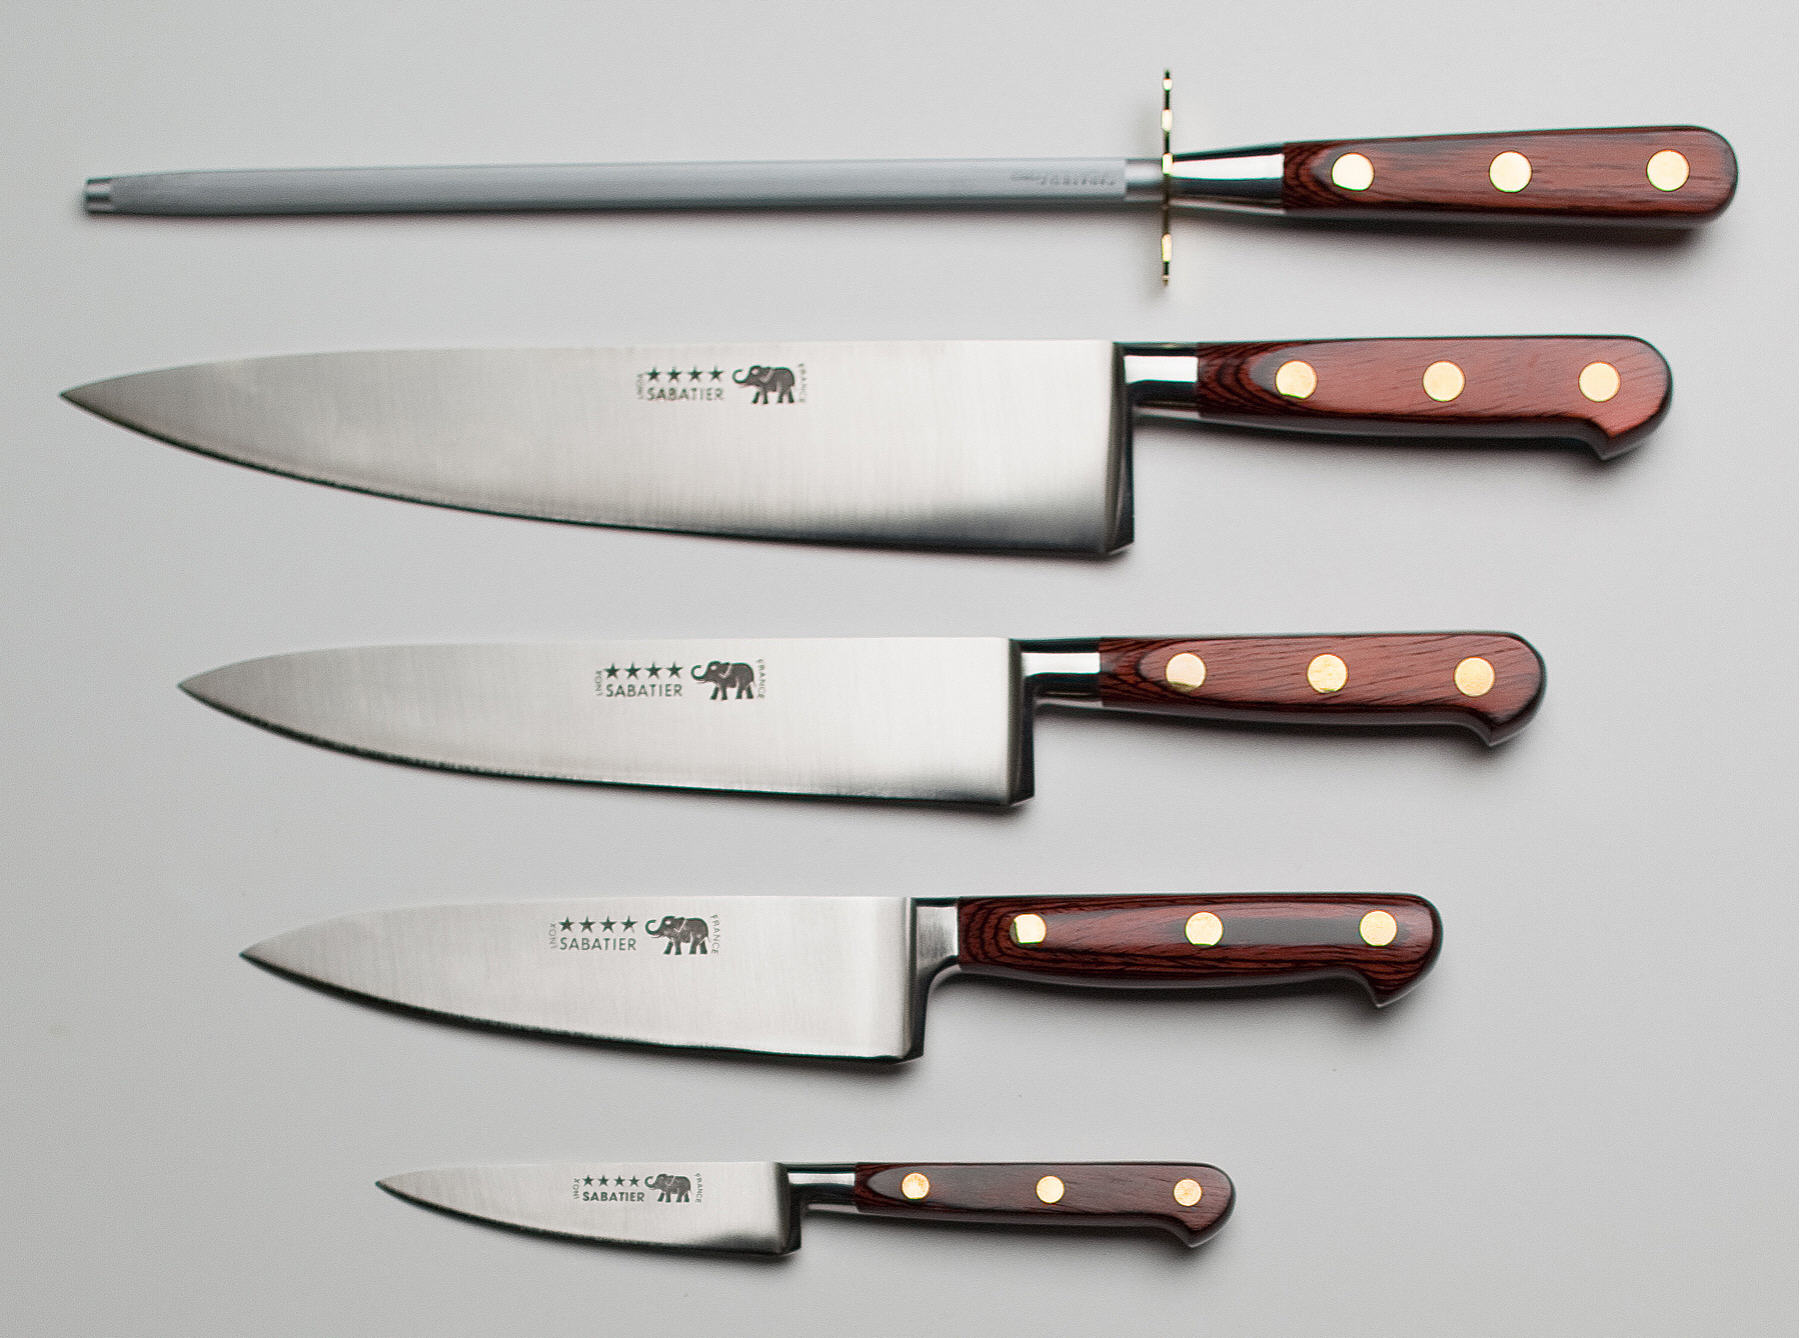 Charmant Thiers Issard Four Star Elephant Sabatier Knives 5 Pc Knife Set   Red  Stamina